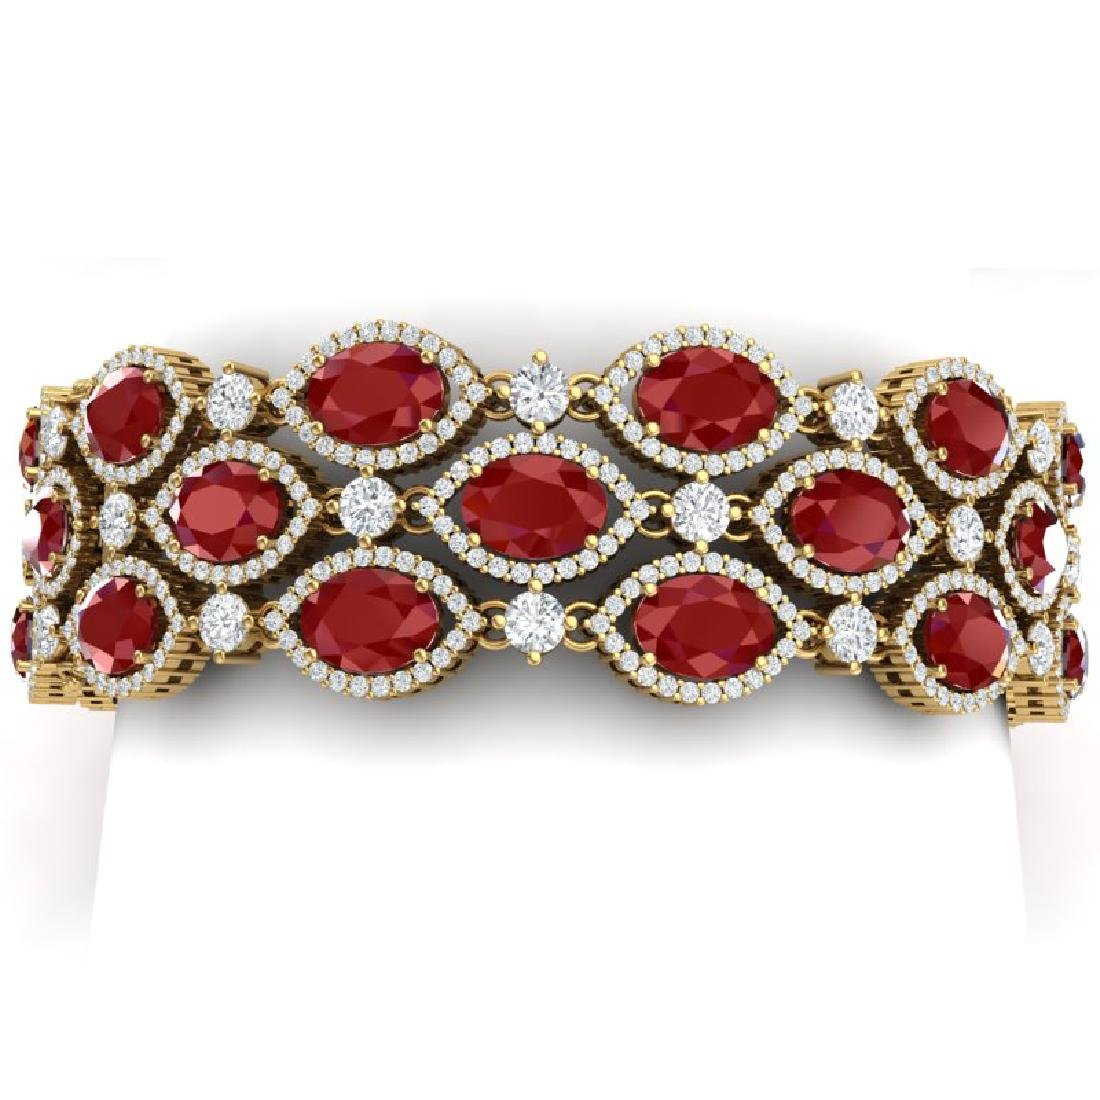 47.84 CTW Royalty Ruby & VS Diamond Bracelet 18K Yellow